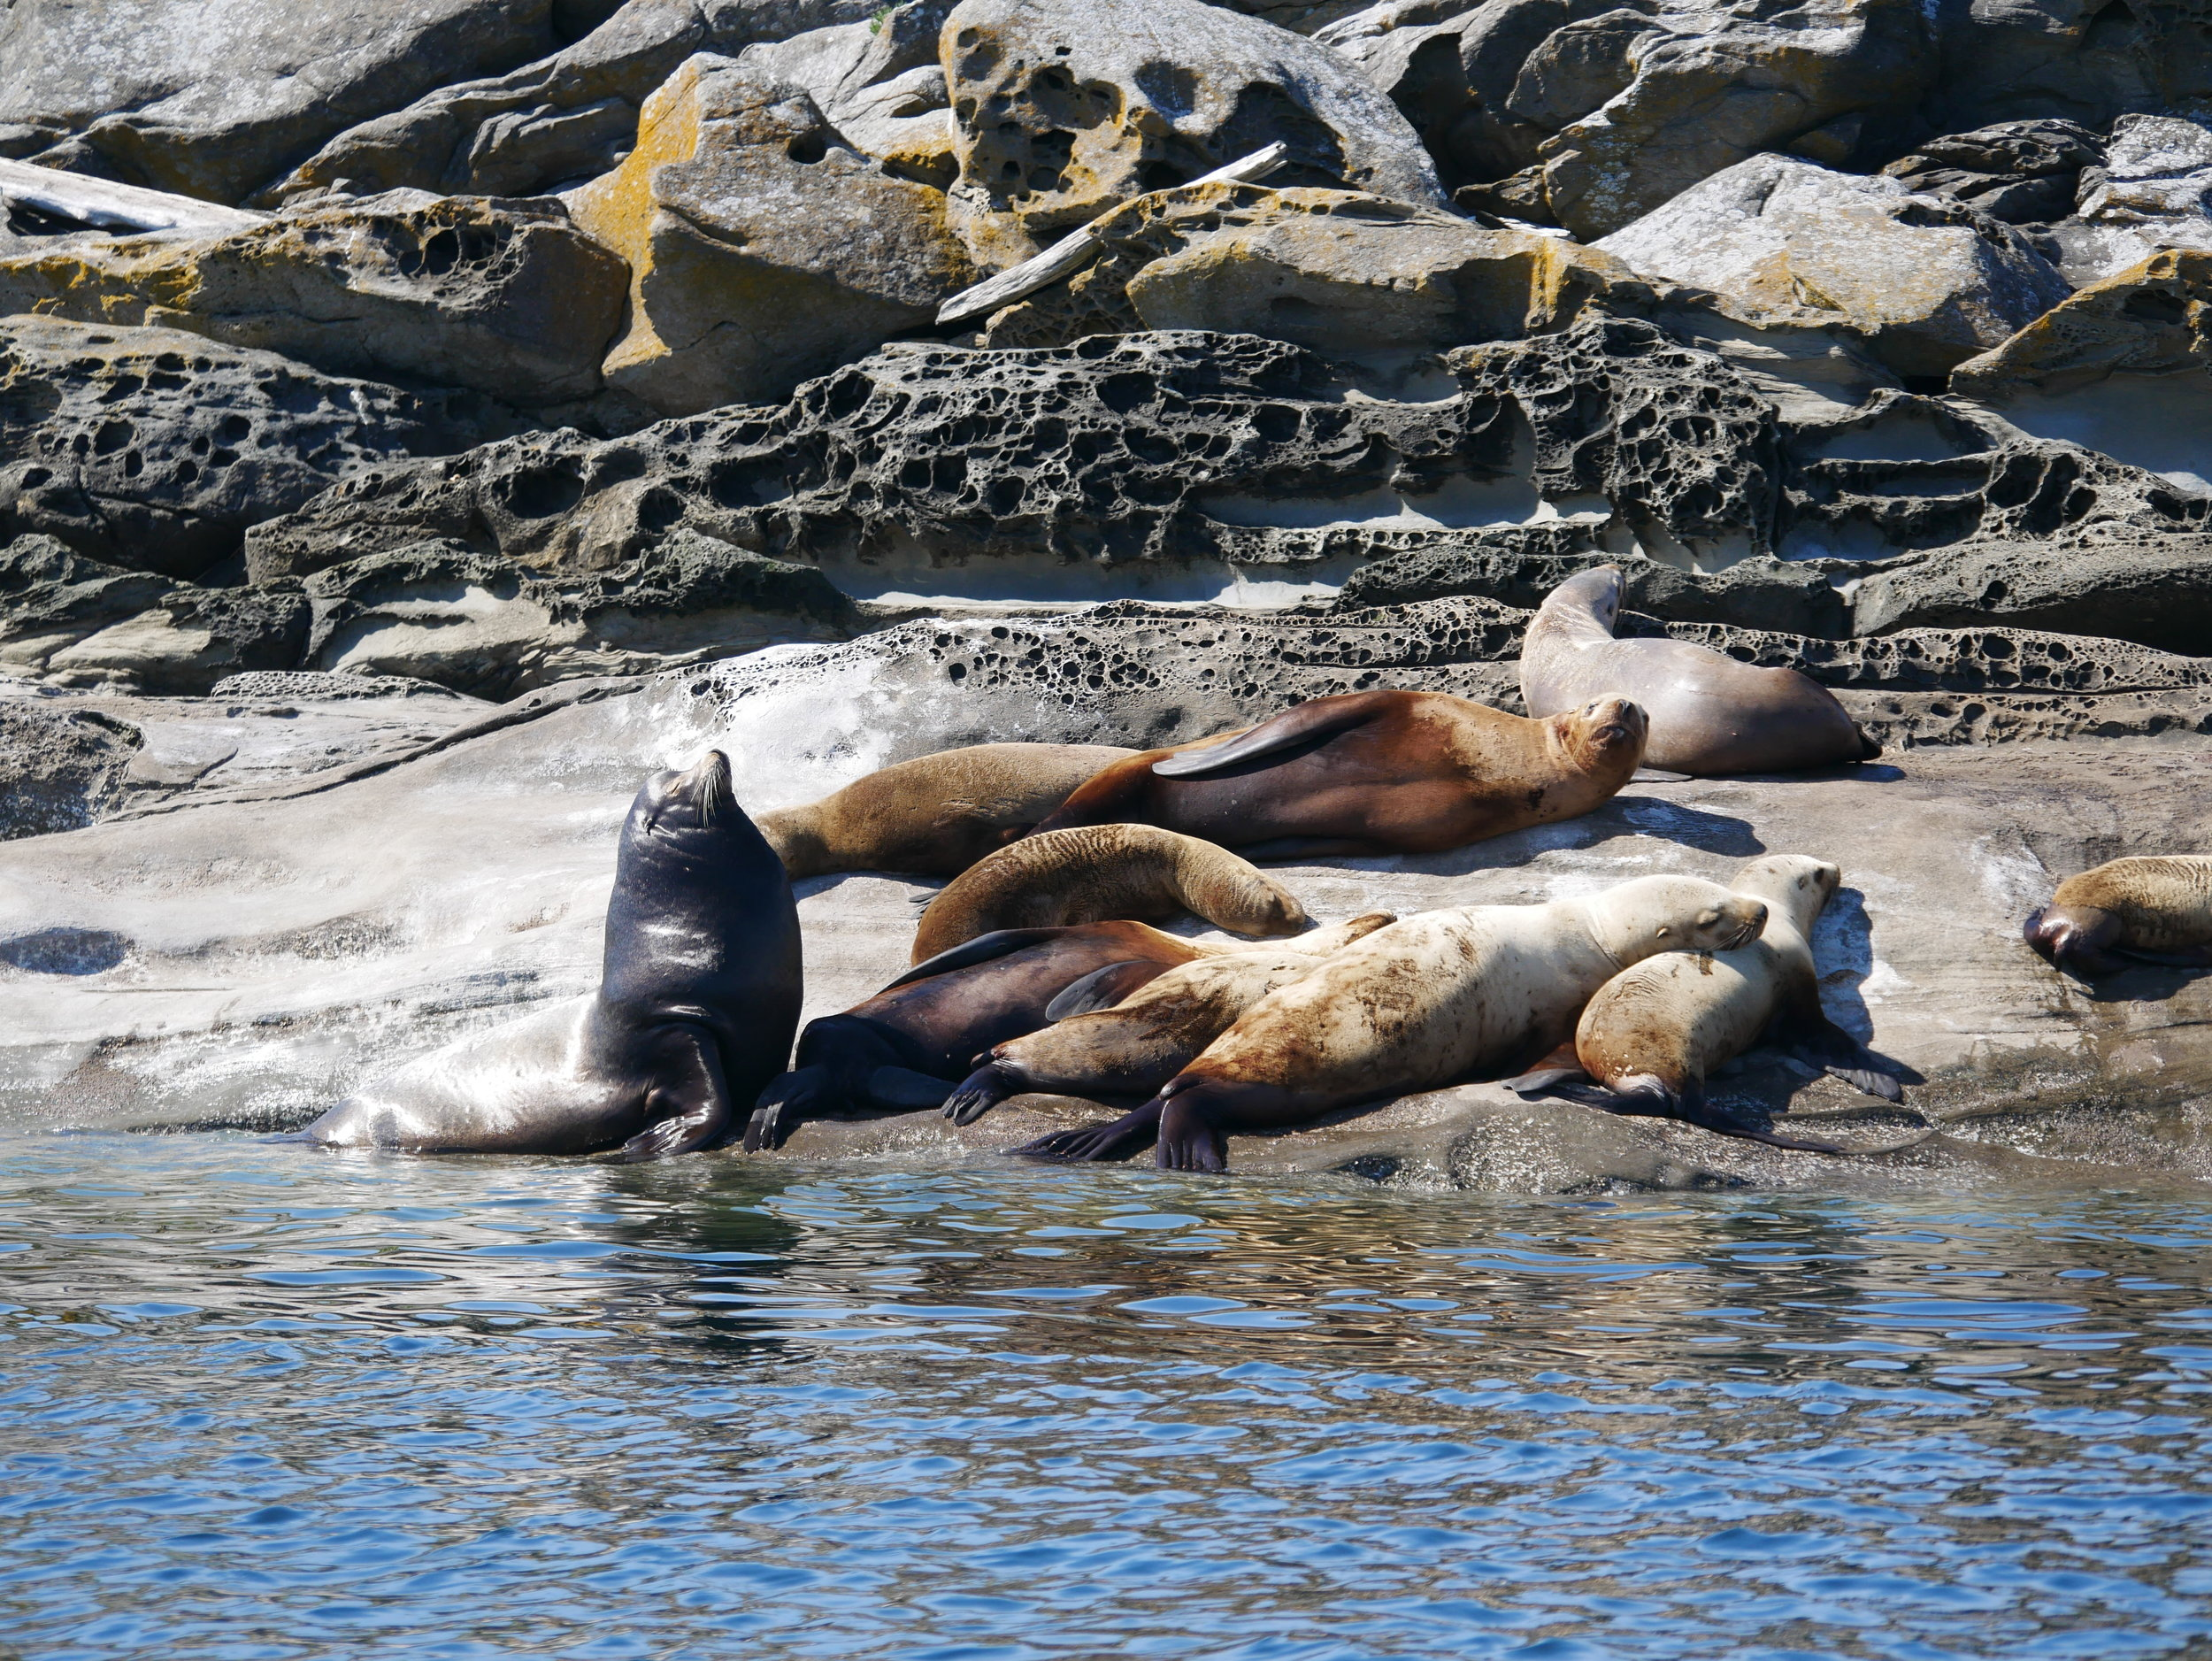 The day wouldn't be complete without a visit to our friendly neighbourhood sea lions!